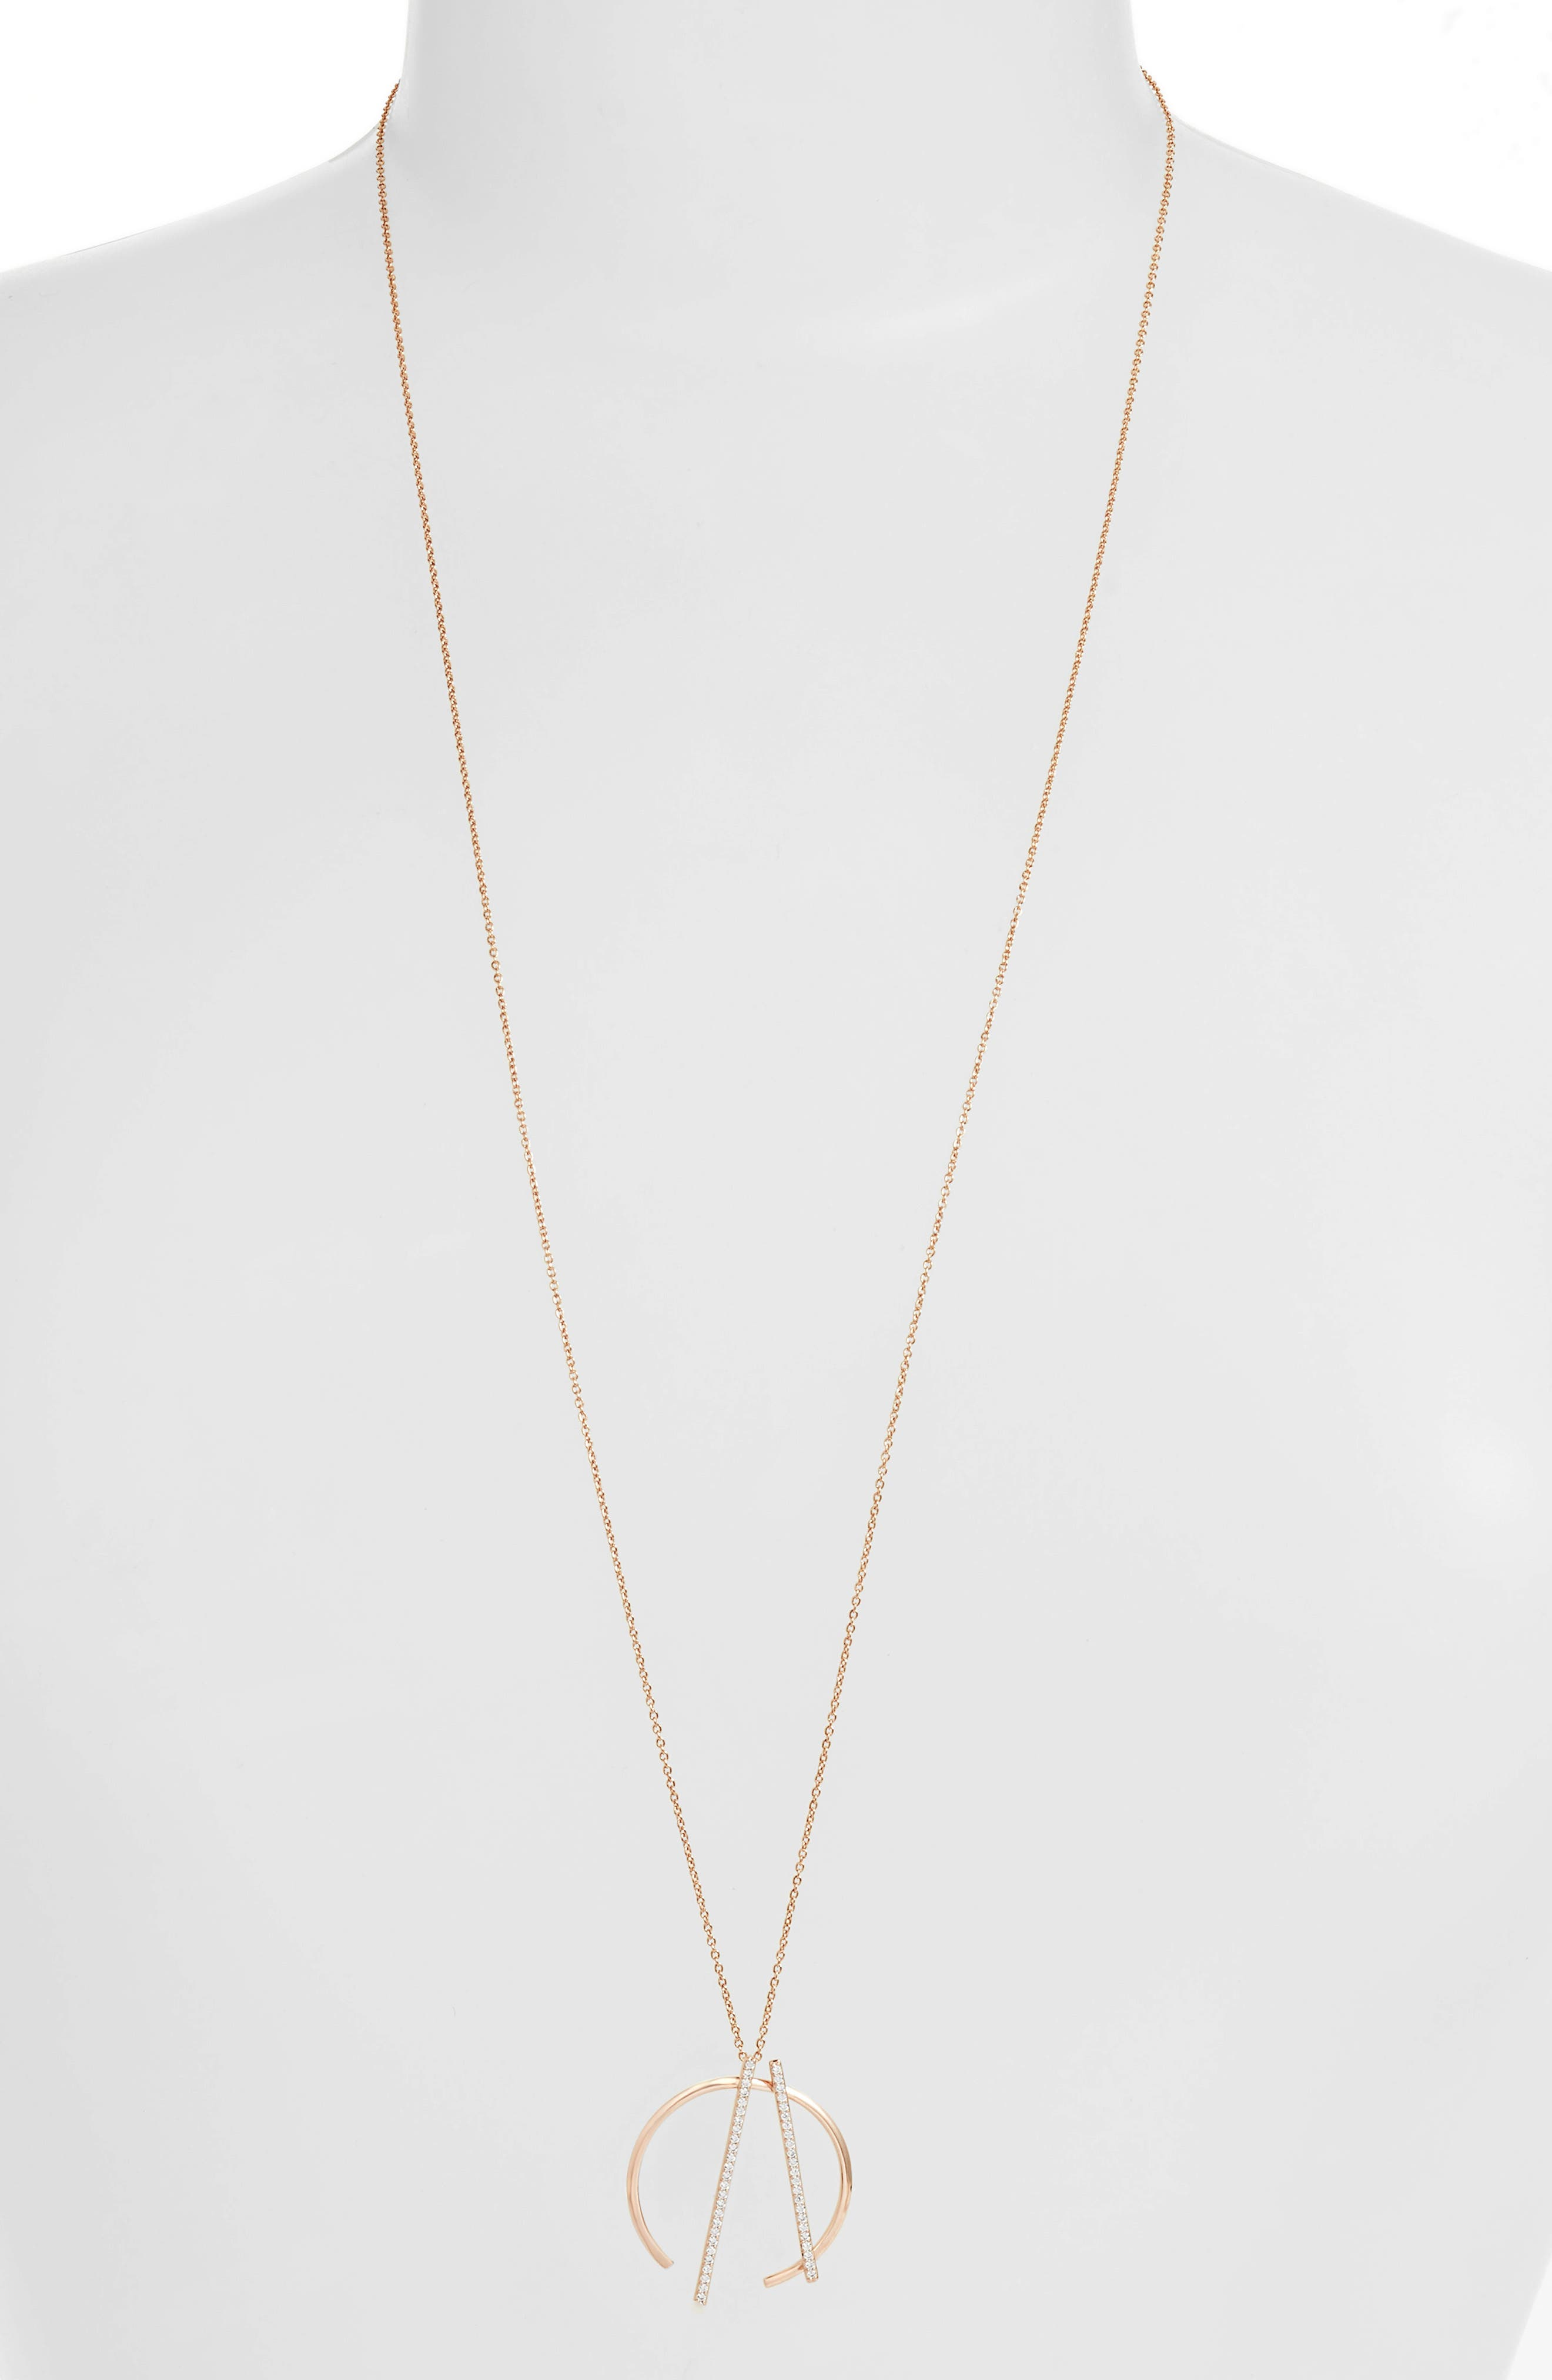 Neo Geo Pendant Necklace,                             Main thumbnail 1, color,                             ROSE GOLD